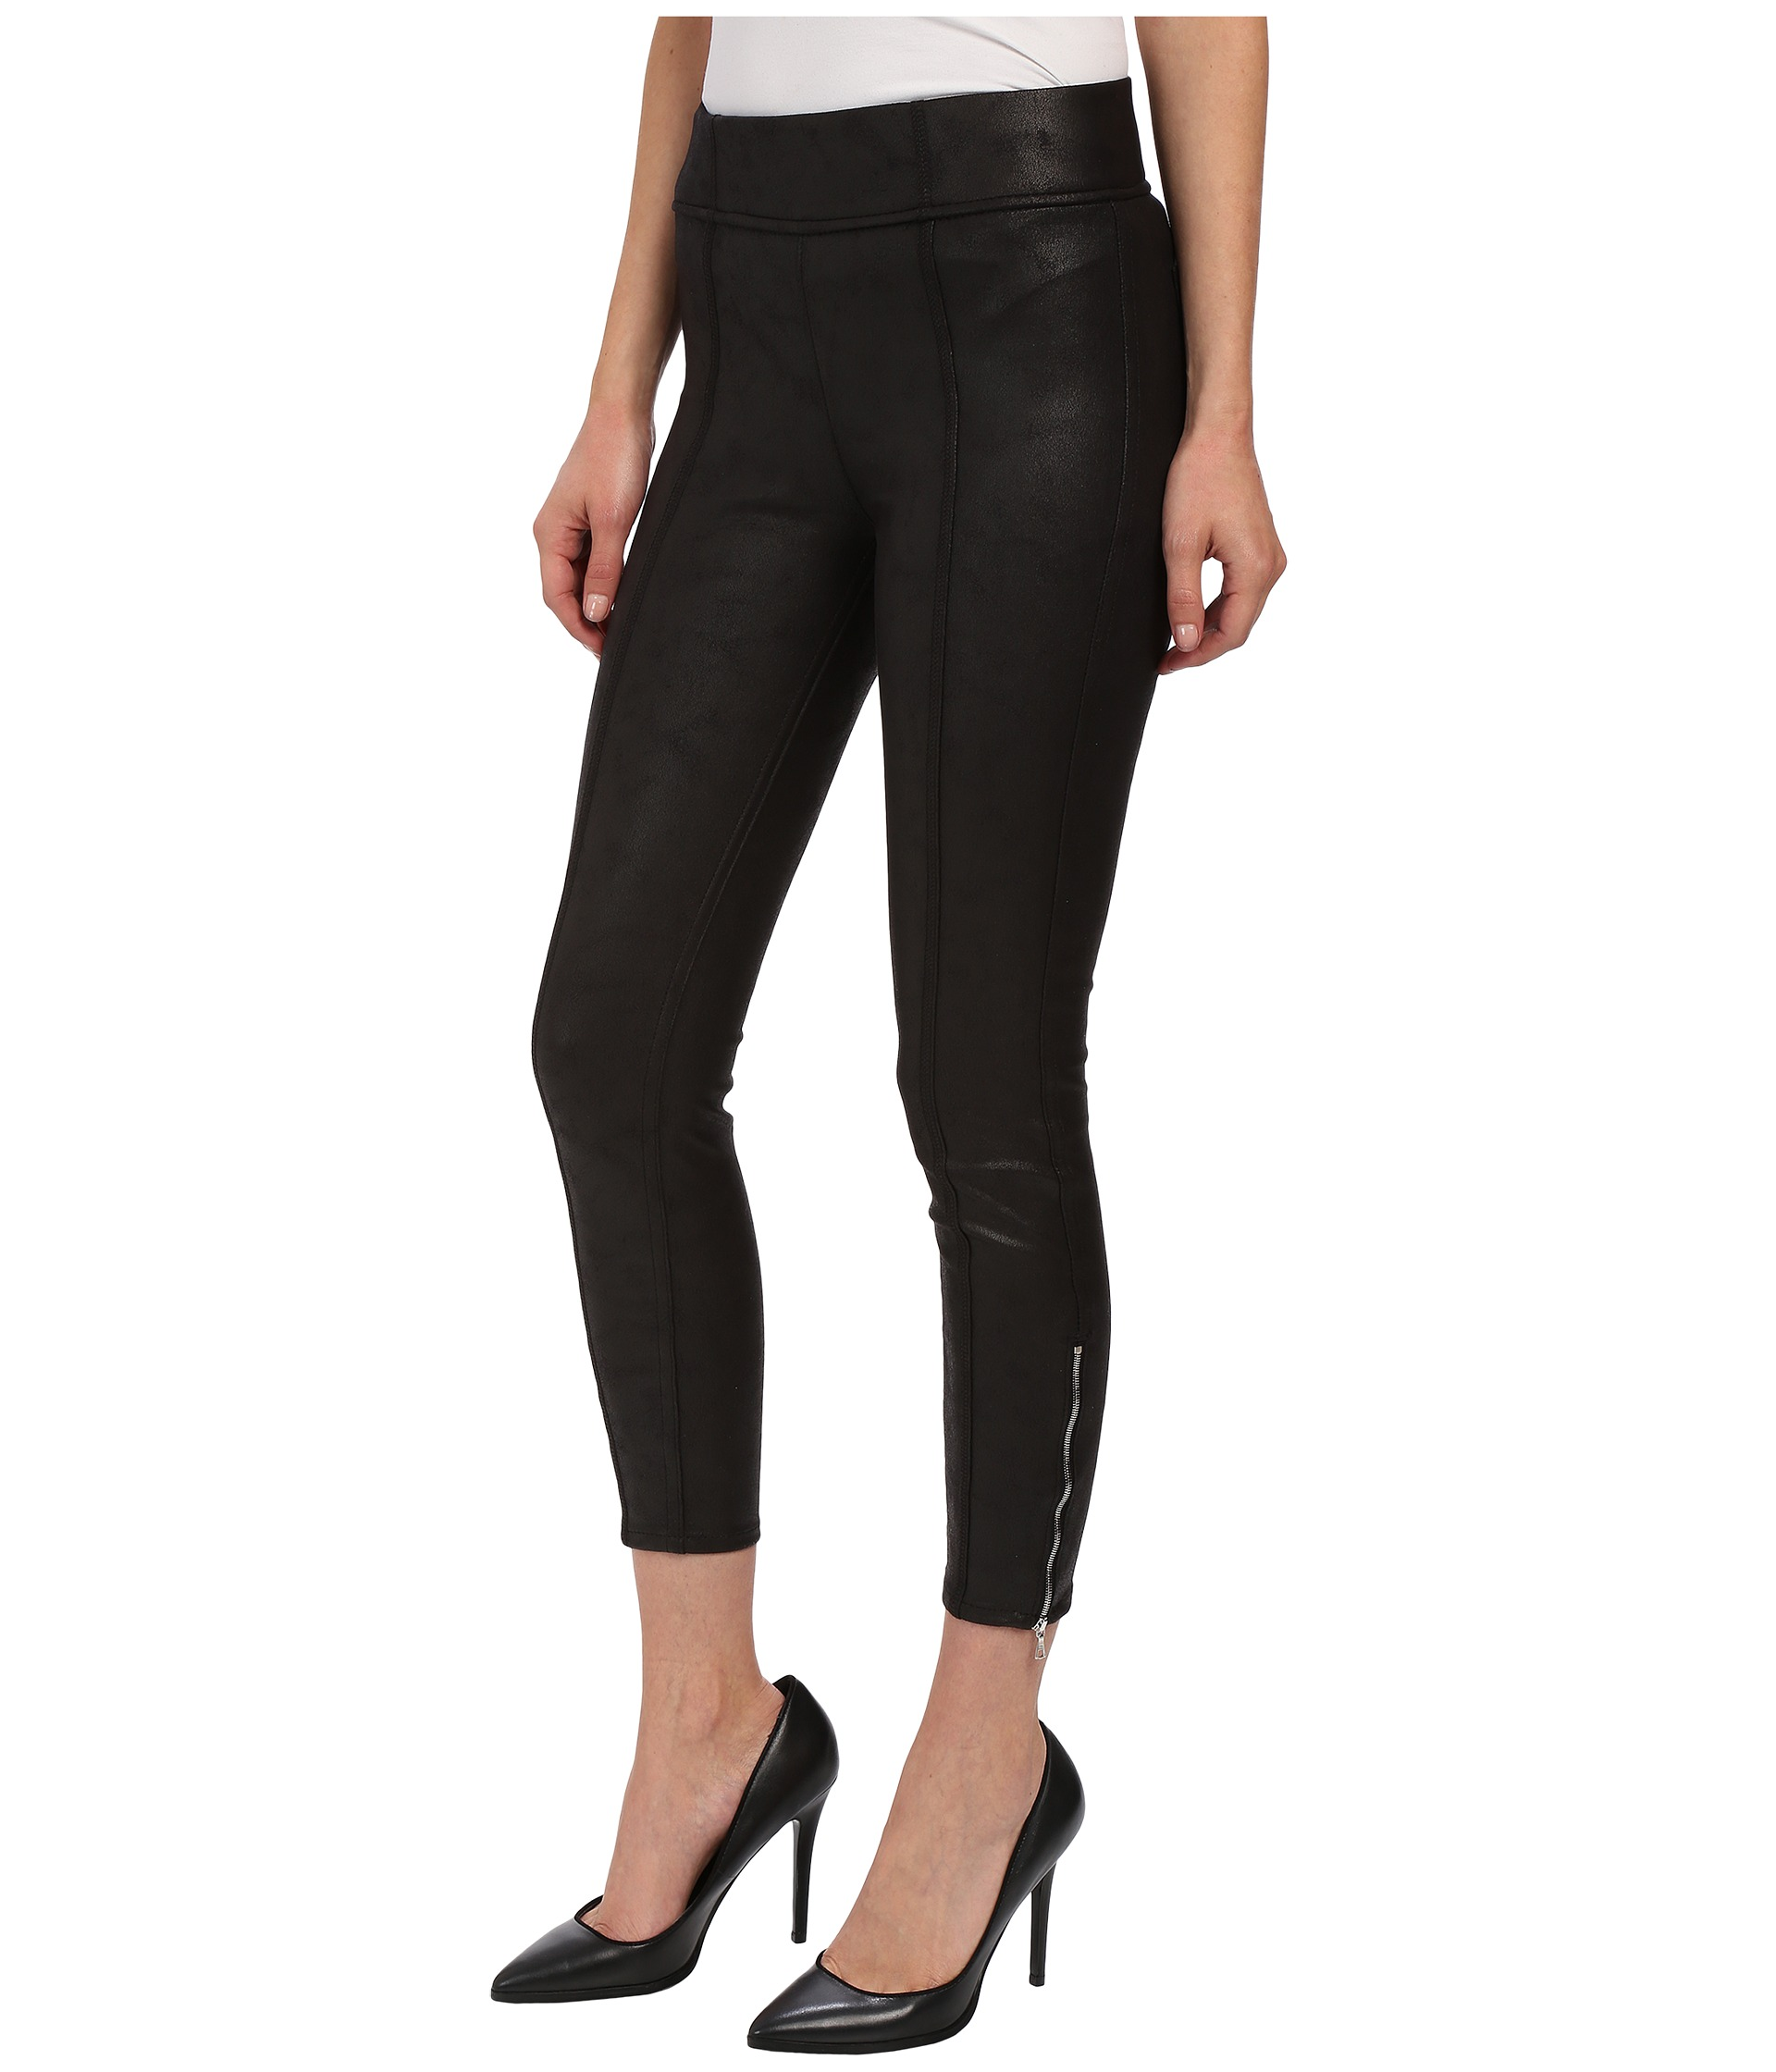 Shop for leather leggings online at Target. Free shipping on purchases over $35 and save 5% every day with your Target REDcard.